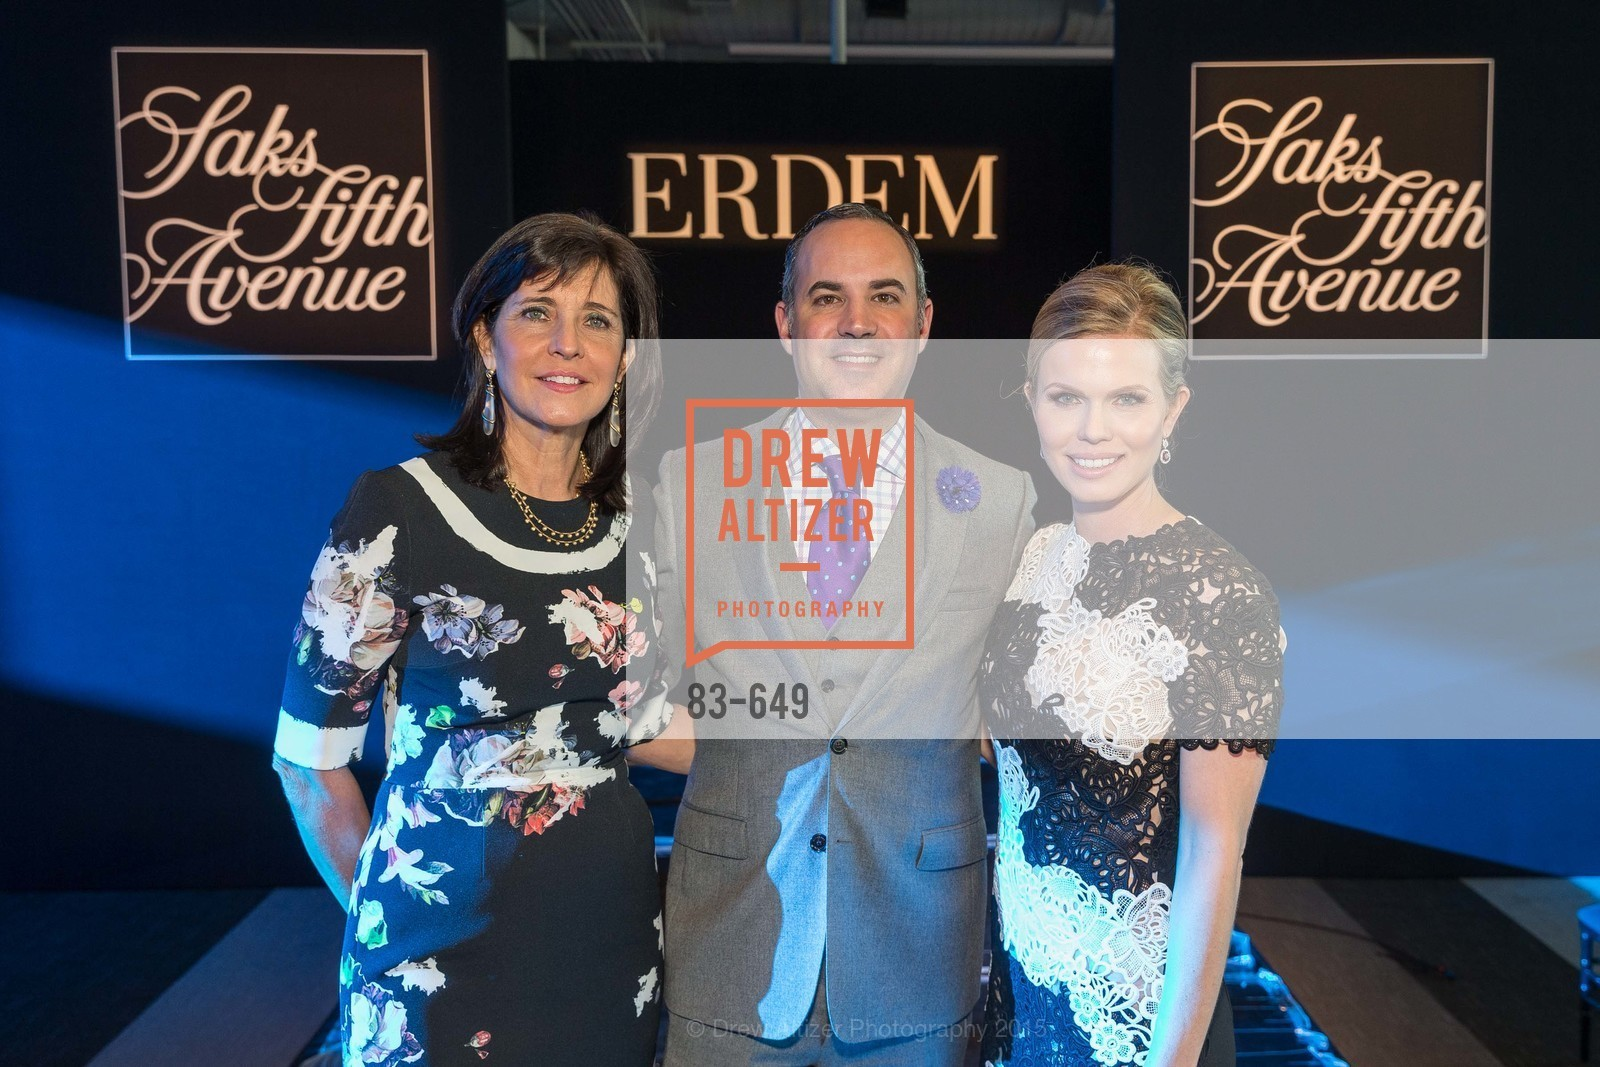 Anne Marie Massocca, Robert Arnold-Kraft, Claire Fluhr, Fashion Forward: An Evening with Erdem presented by SF Opera Guild and Saks Fifth Avenue, Pier 27. Pier 27, The Embarcadero, March 25th, 2015,Drew Altizer, Drew Altizer Photography, full-service event agency, private events, San Francisco photographer, photographer California